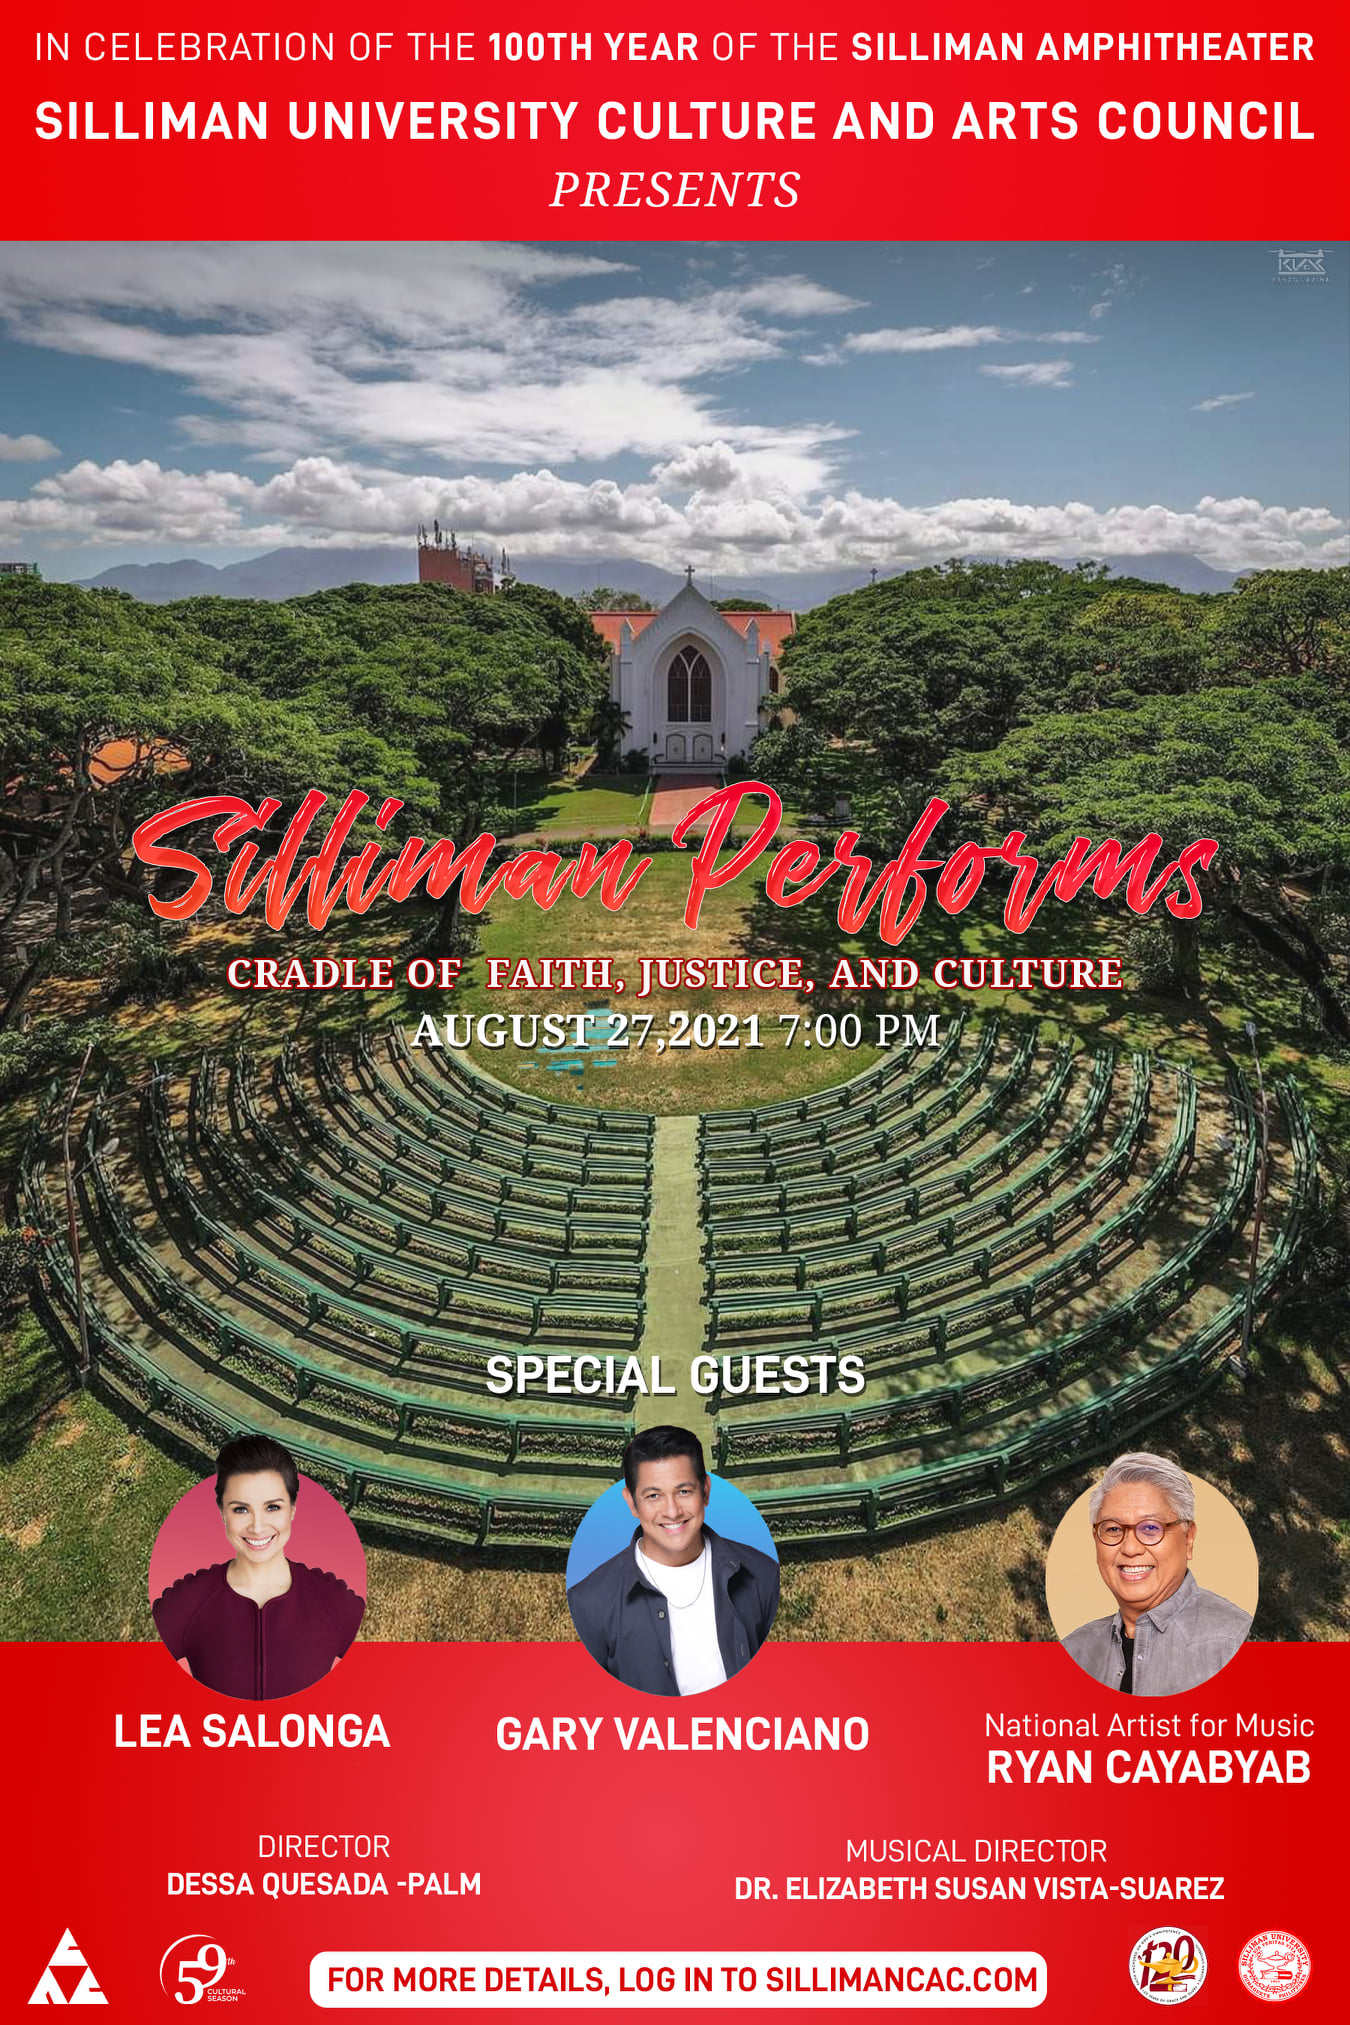 Silliman Performs